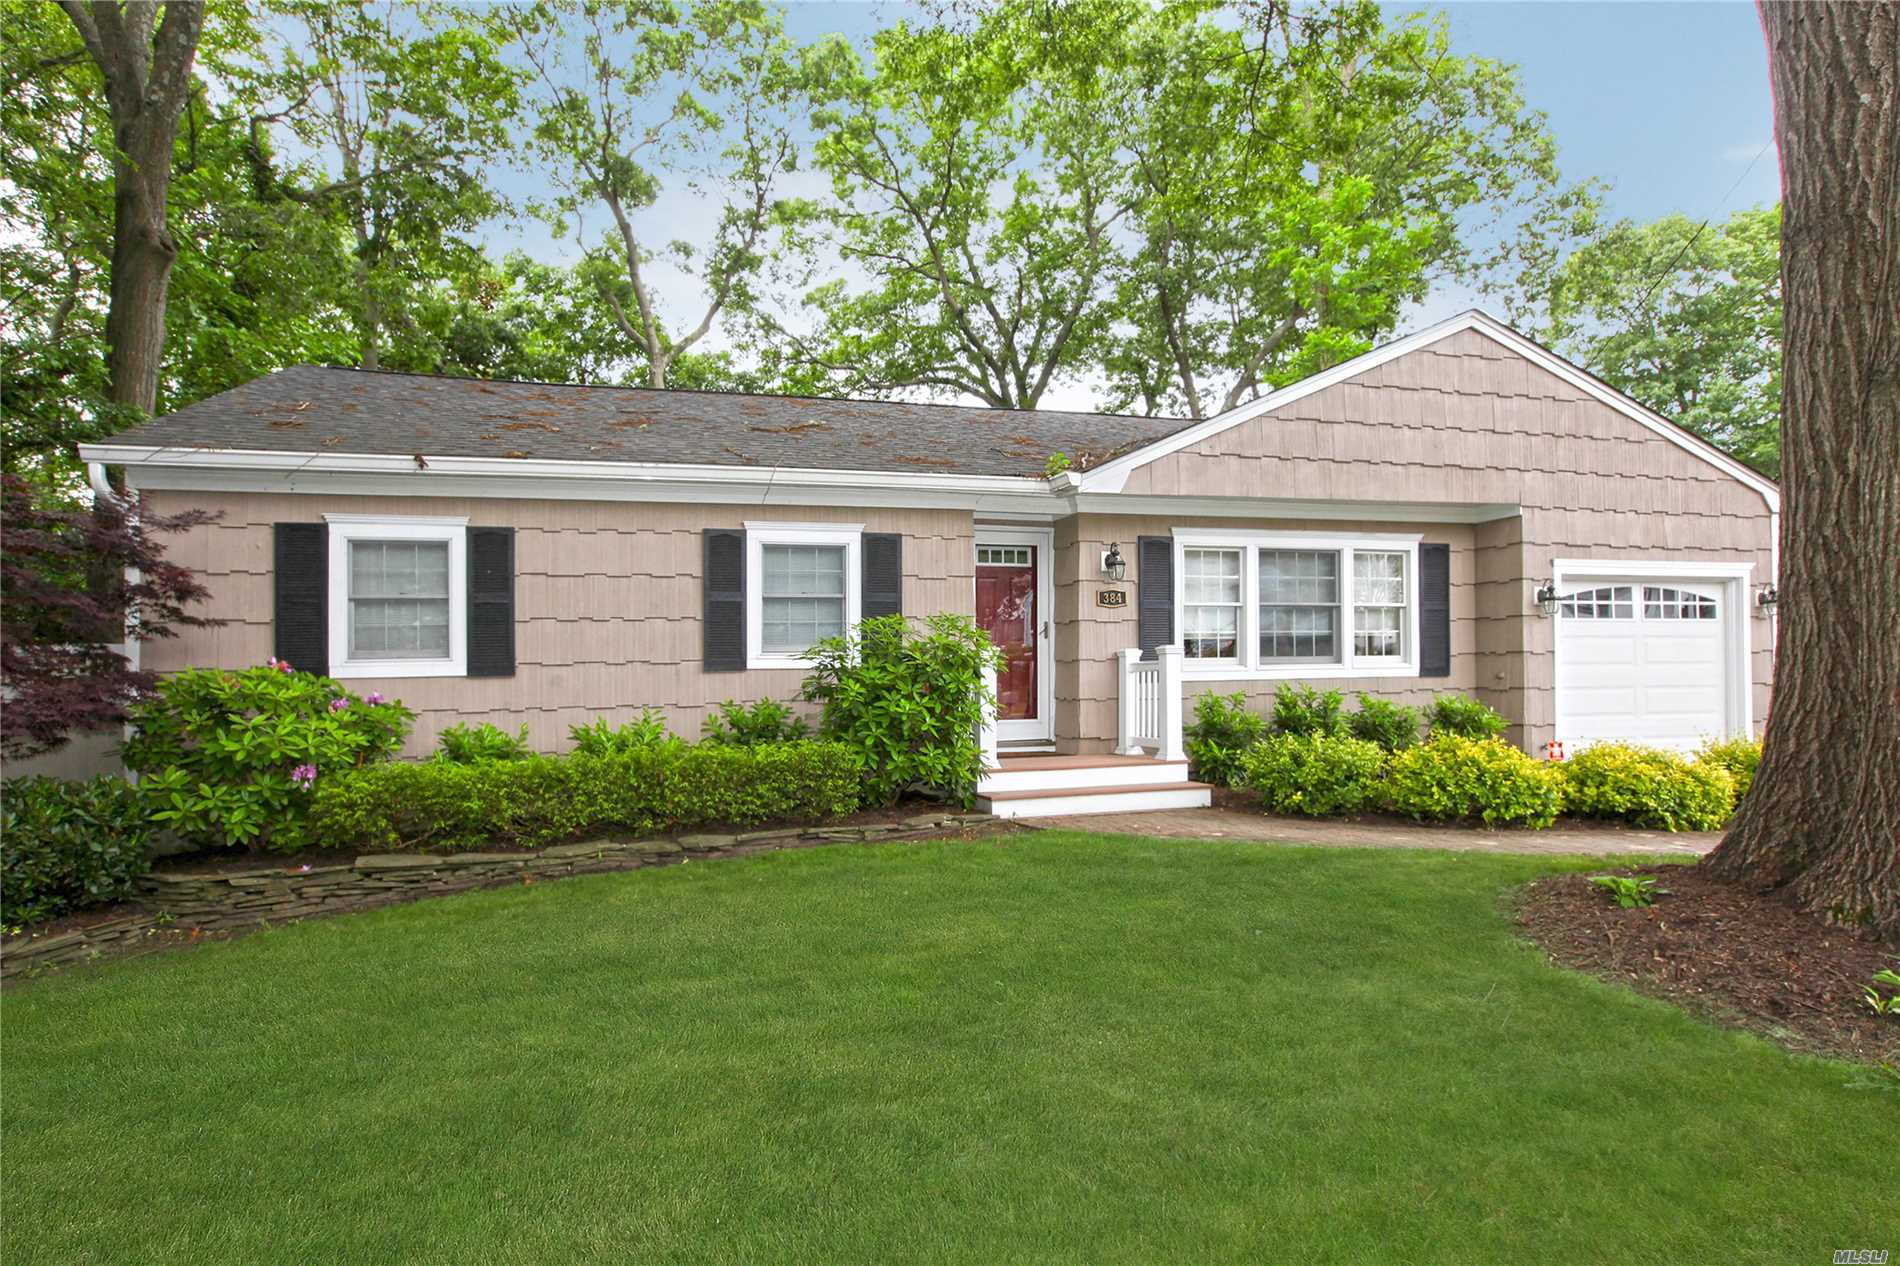 384 Deer Rd - Ronkonkoma, New York